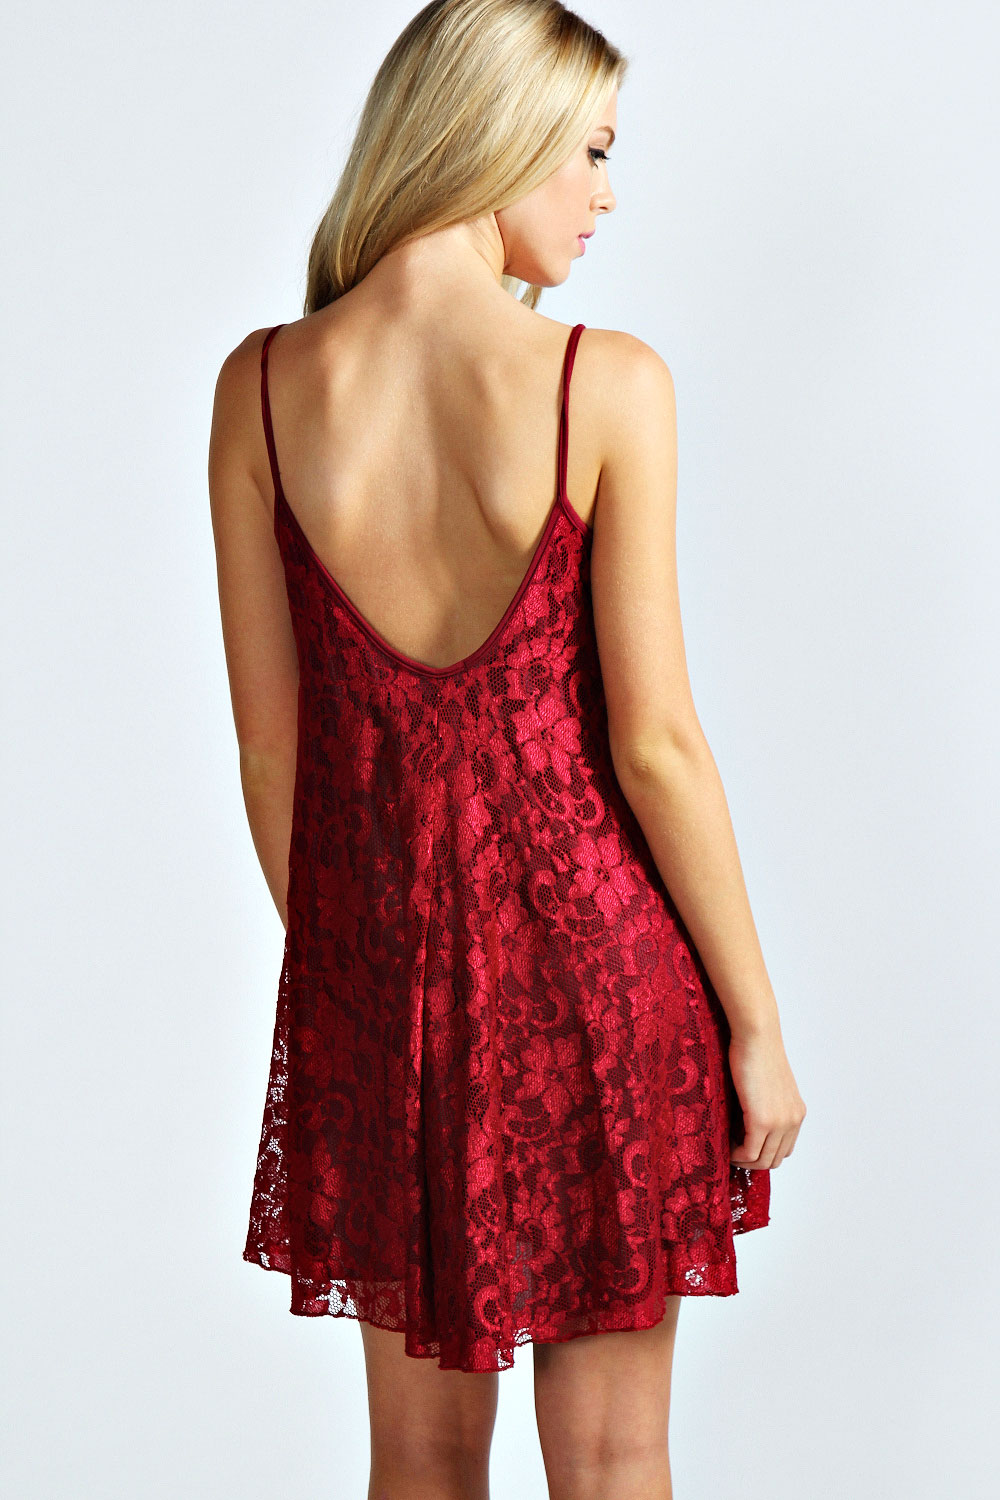 Berry Nicola Strappy Lace Swing Dress